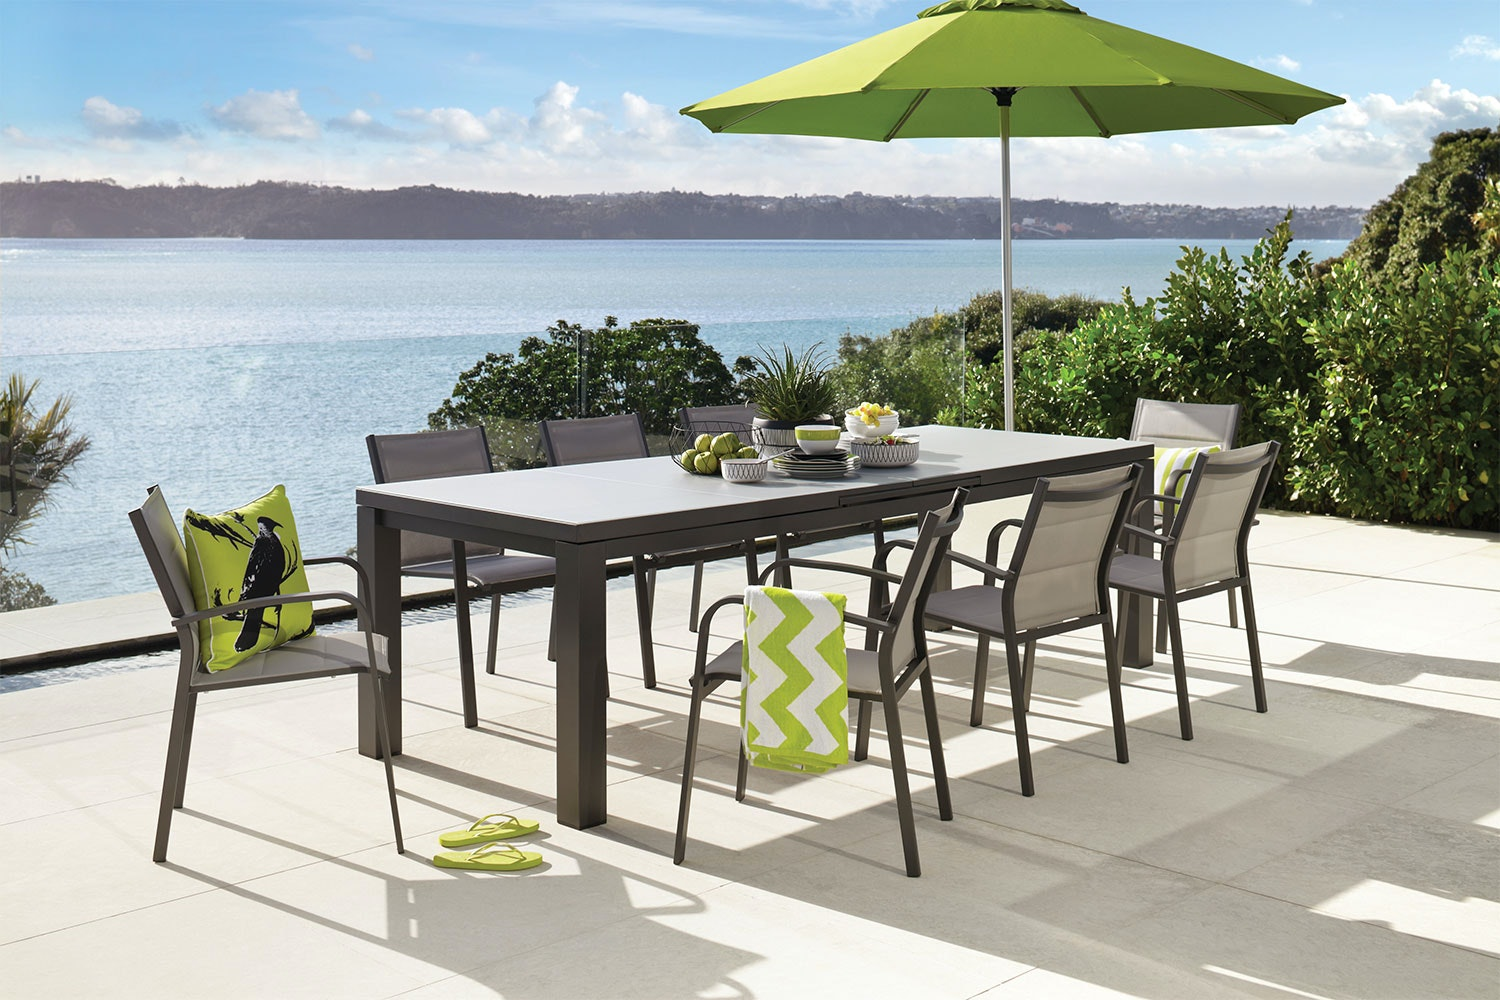 Superior Fiji 9 Piece Outdoor Extension Dining Setting ... Part 6